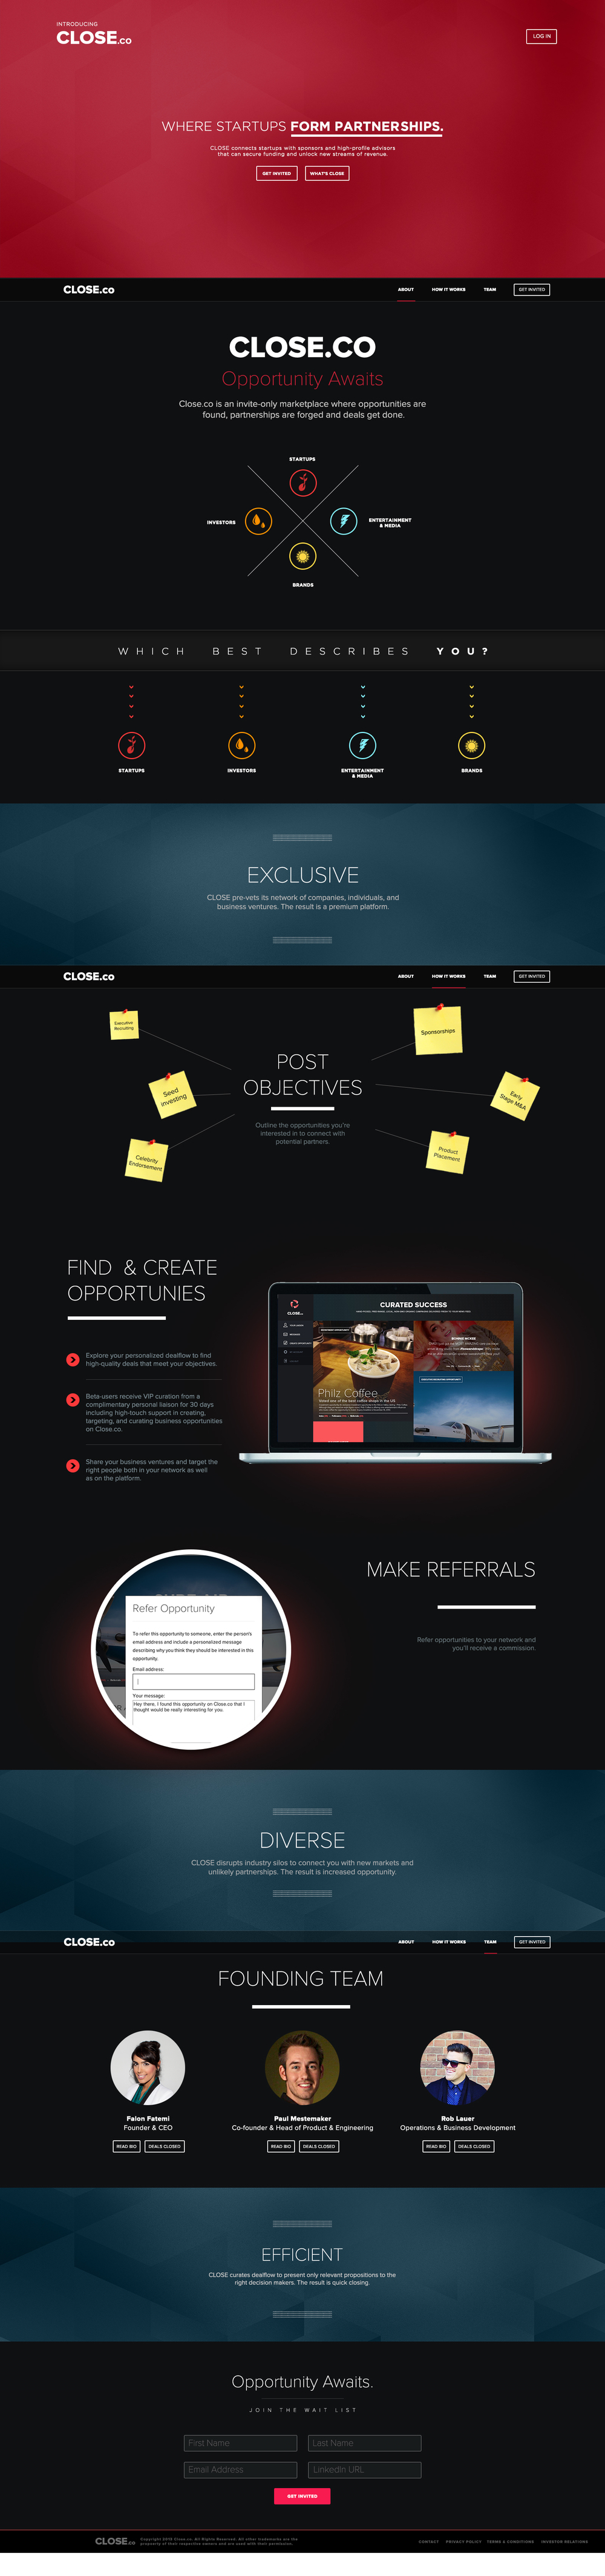 Close.co UI - Landing Page V2_0000_Home Page.jpg